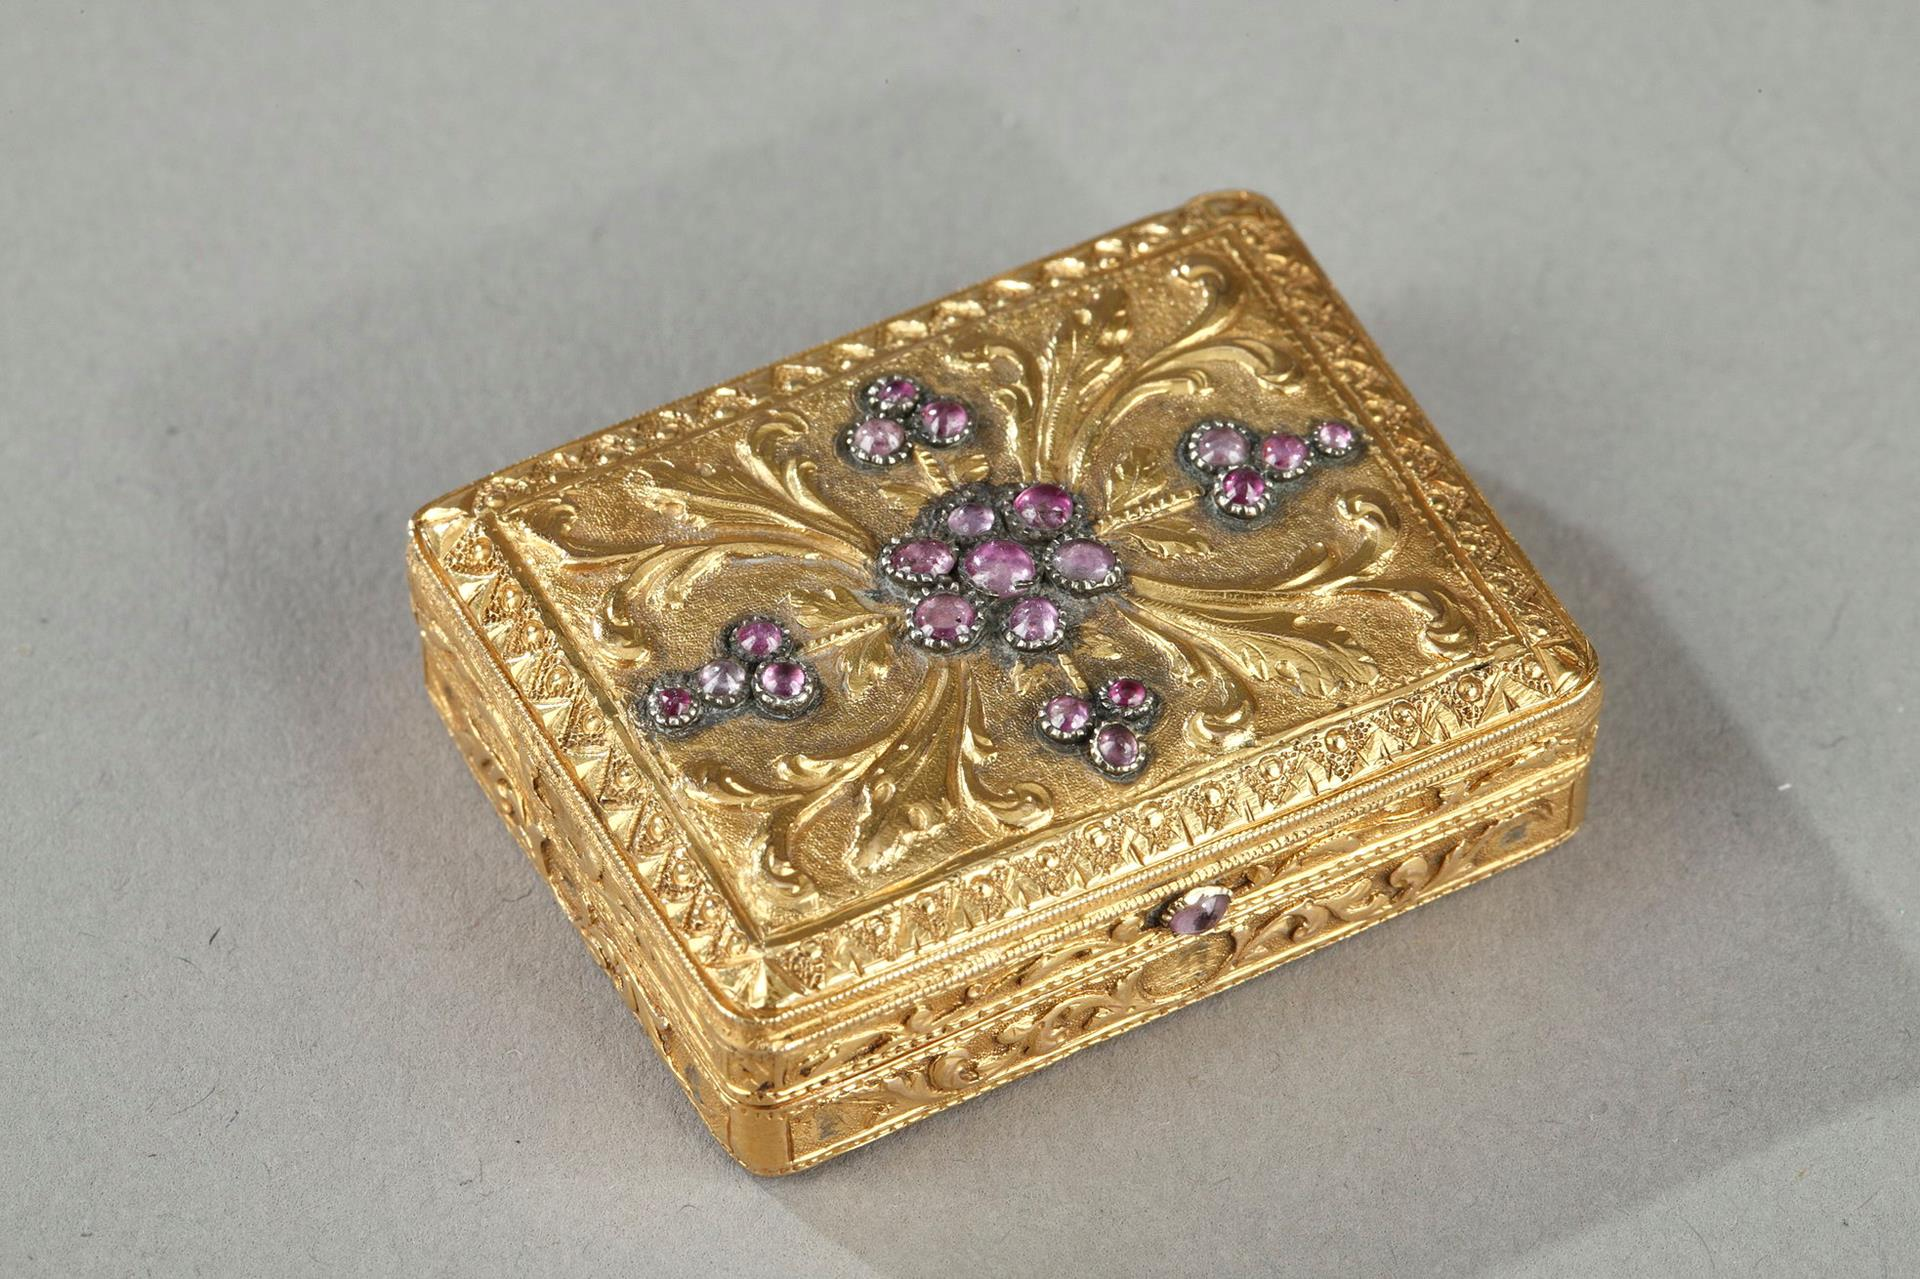 OLD VINAIGRETTE WITH PRECIOUS STONES.<br/> MID-19TH CENTURY WORK.